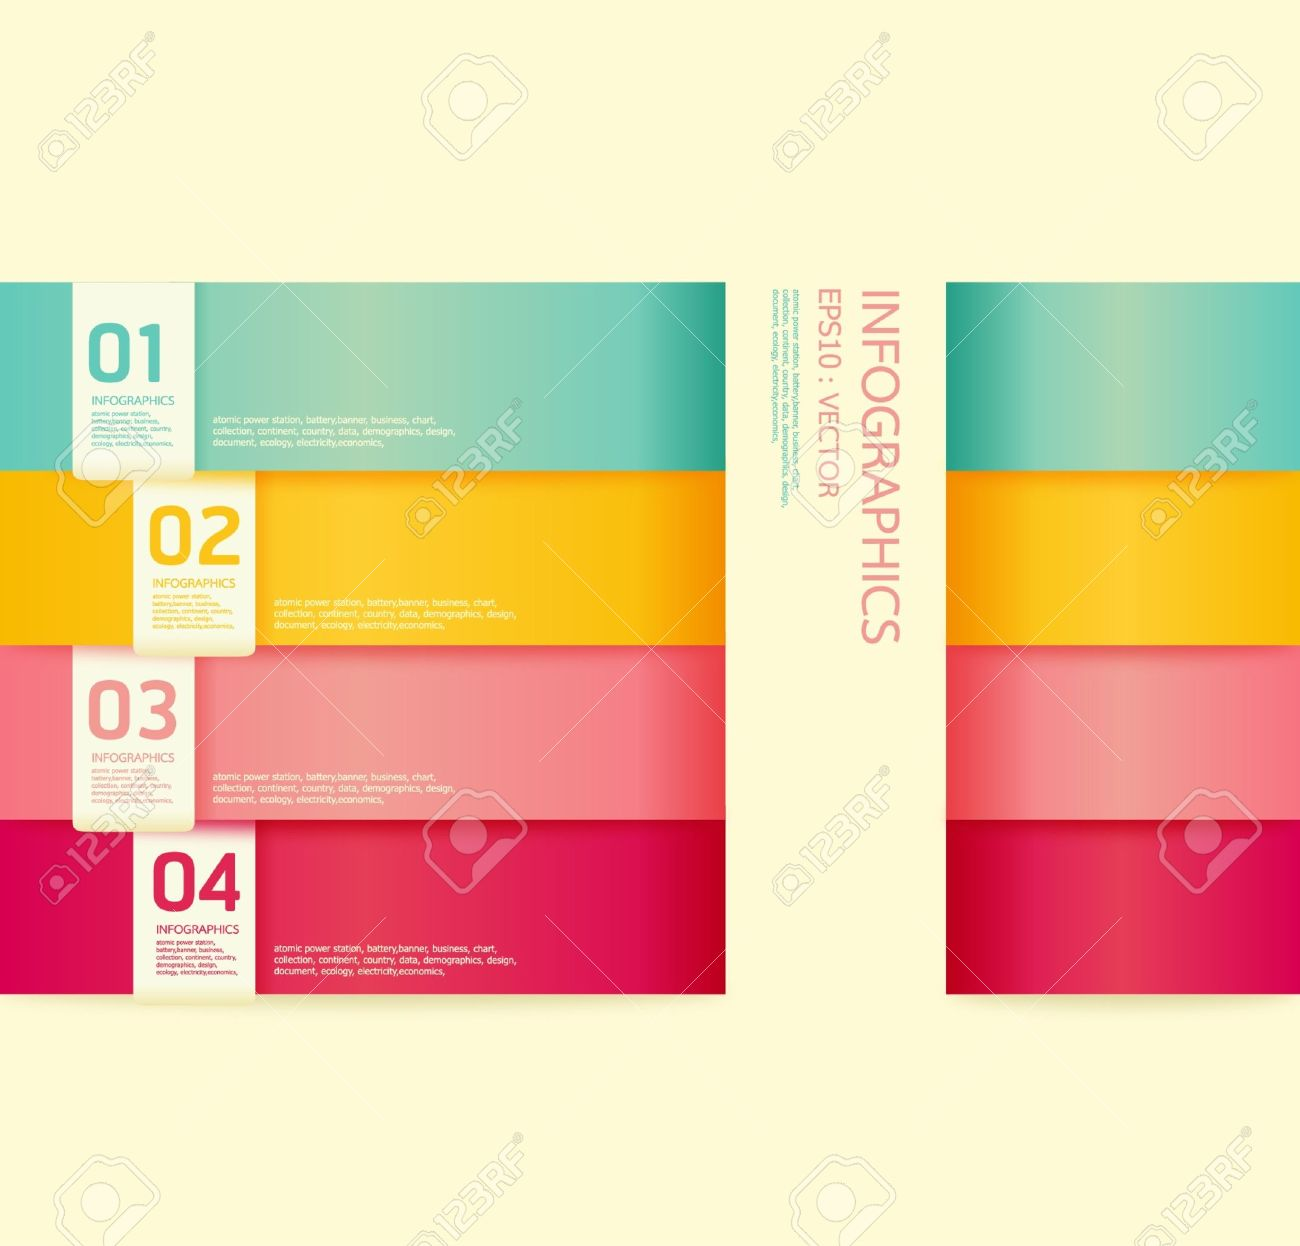 Website soft colors - Modern Soft Color Design Template Can Be Used For Infographics Numbered Banners Horizontal Cutout Lines Graphic